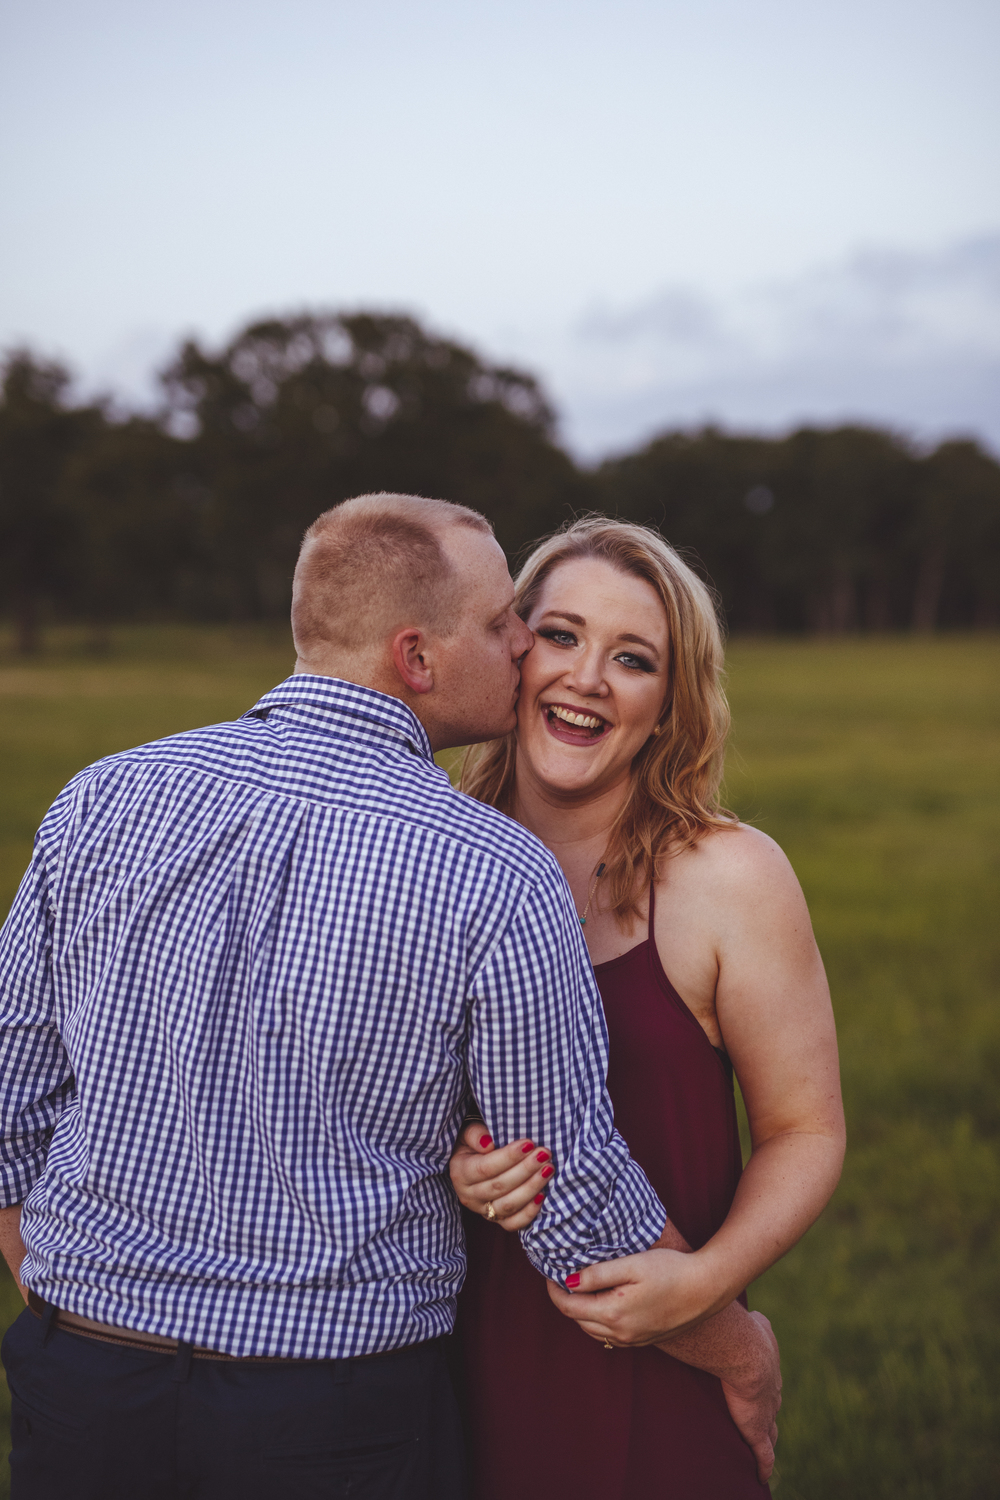 engagementshoot12798.jpg